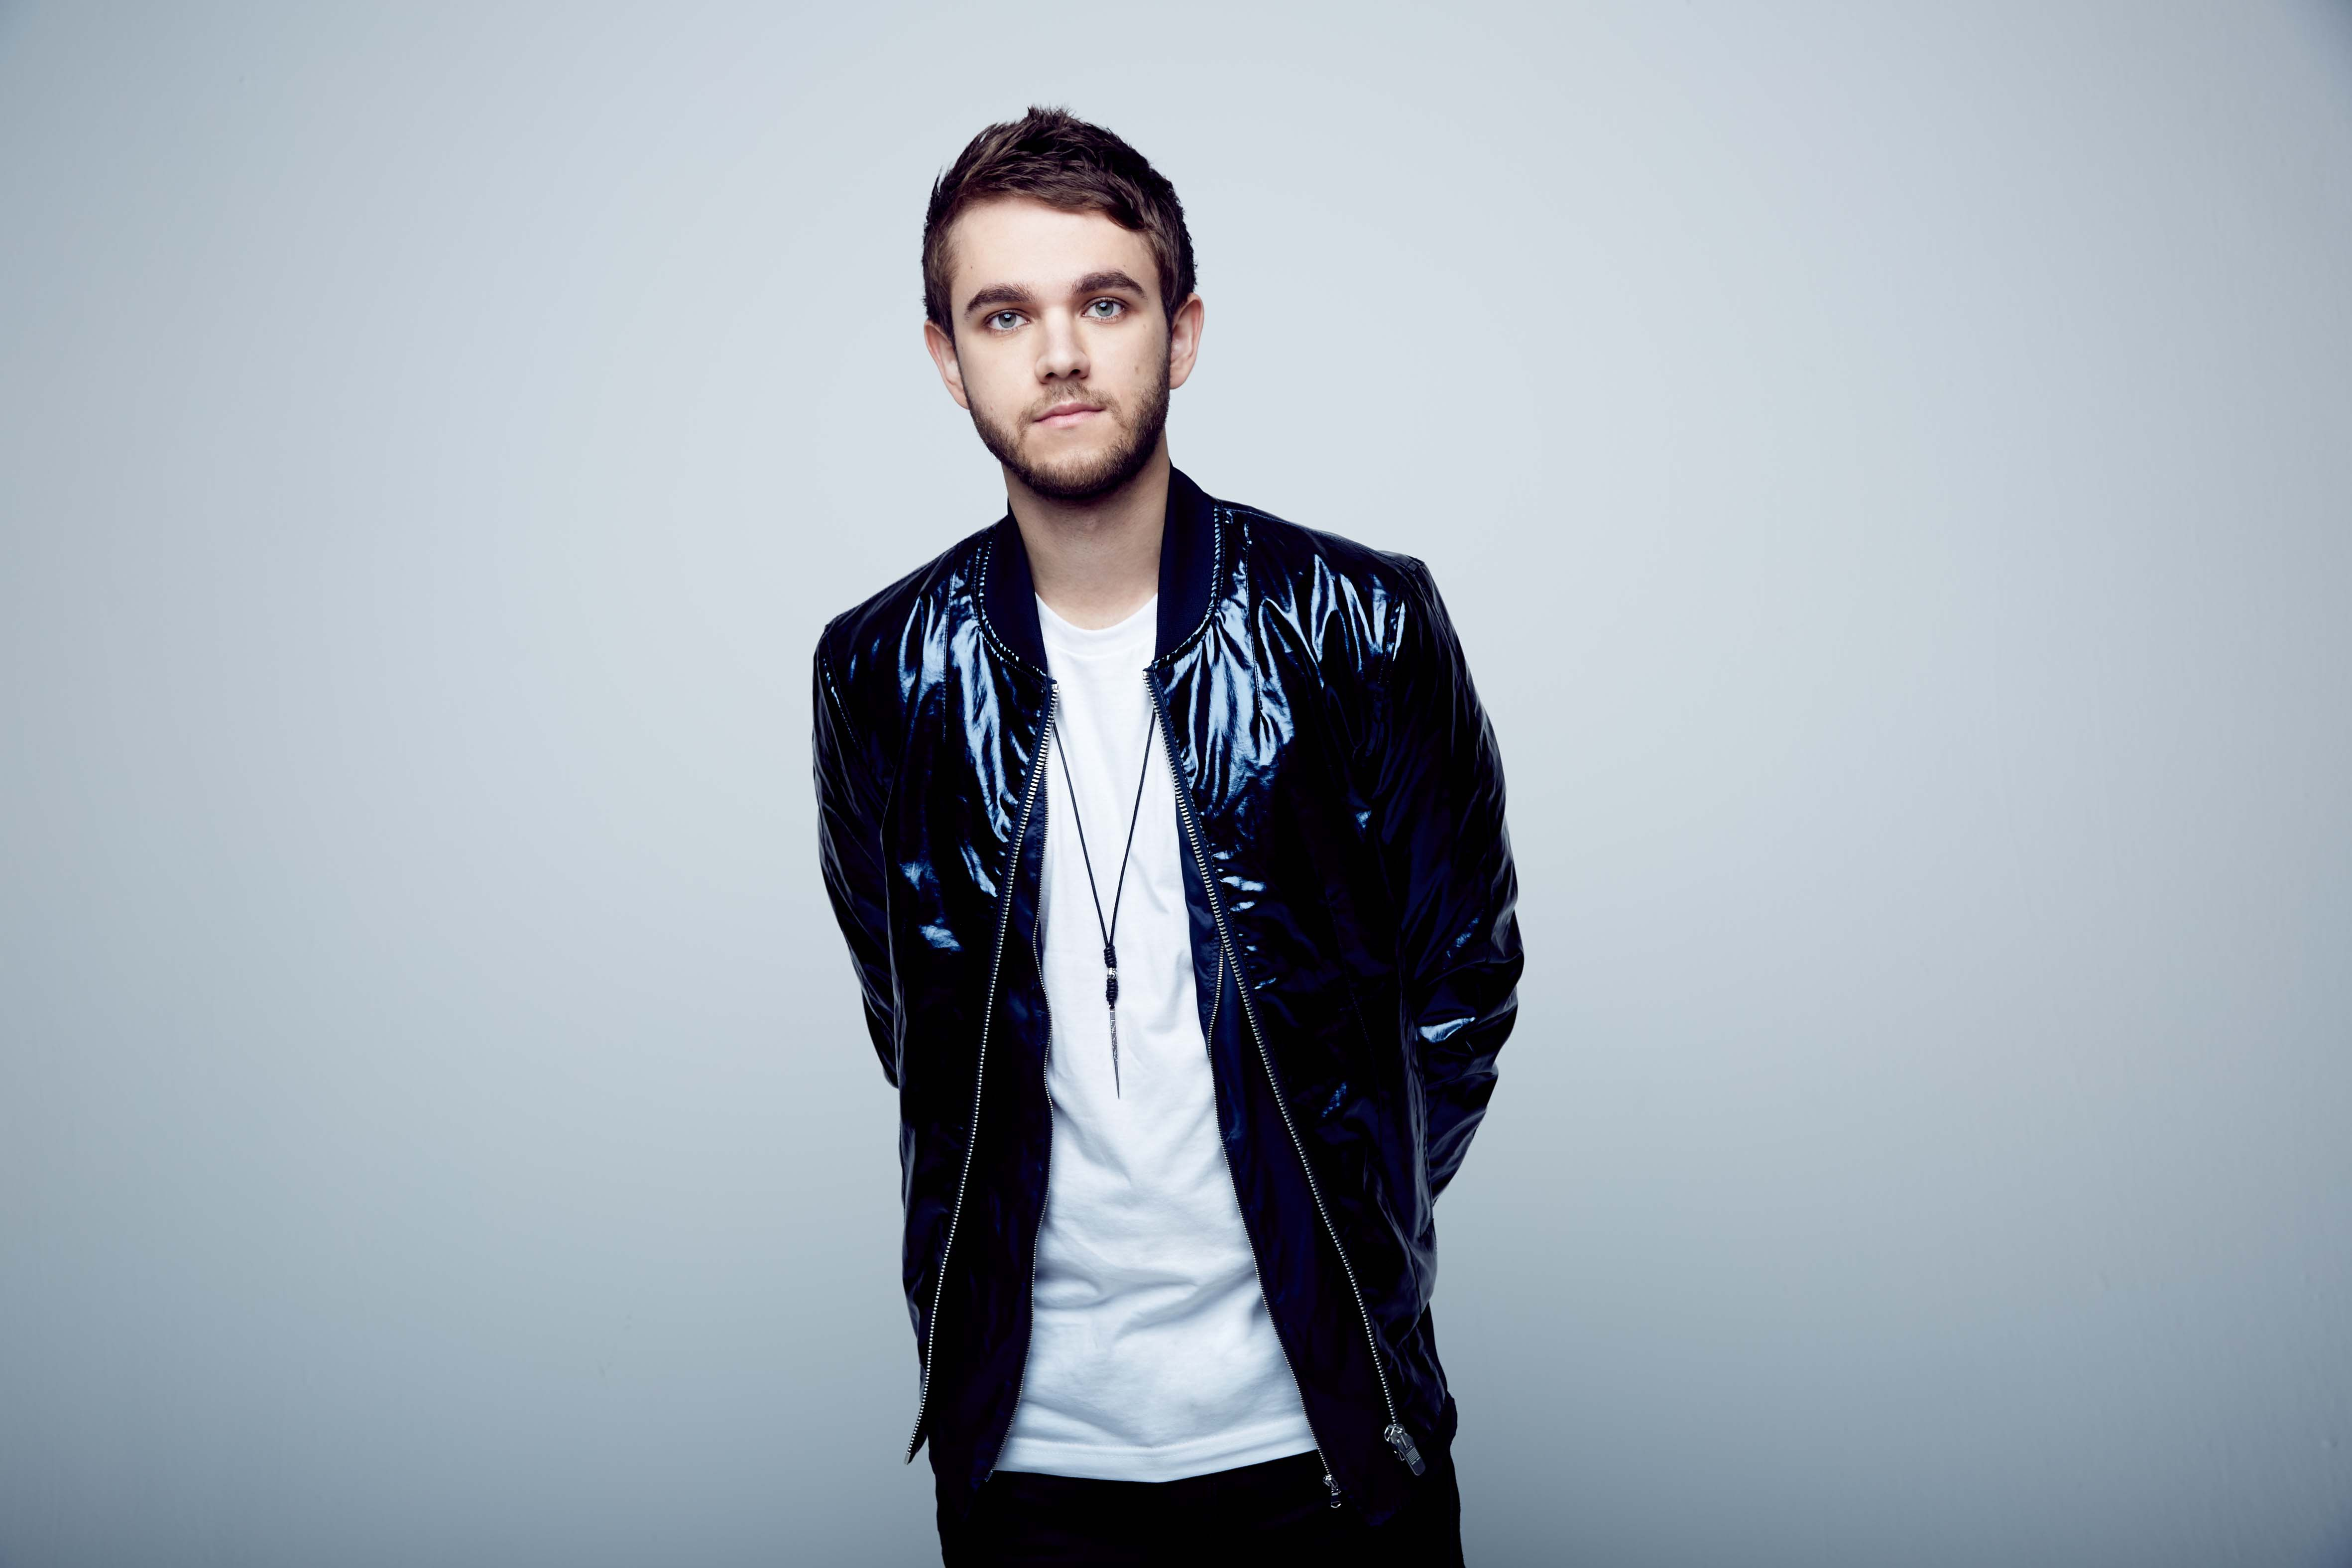 Zedd Wallpapers Images Photos Pictures Backgrounds